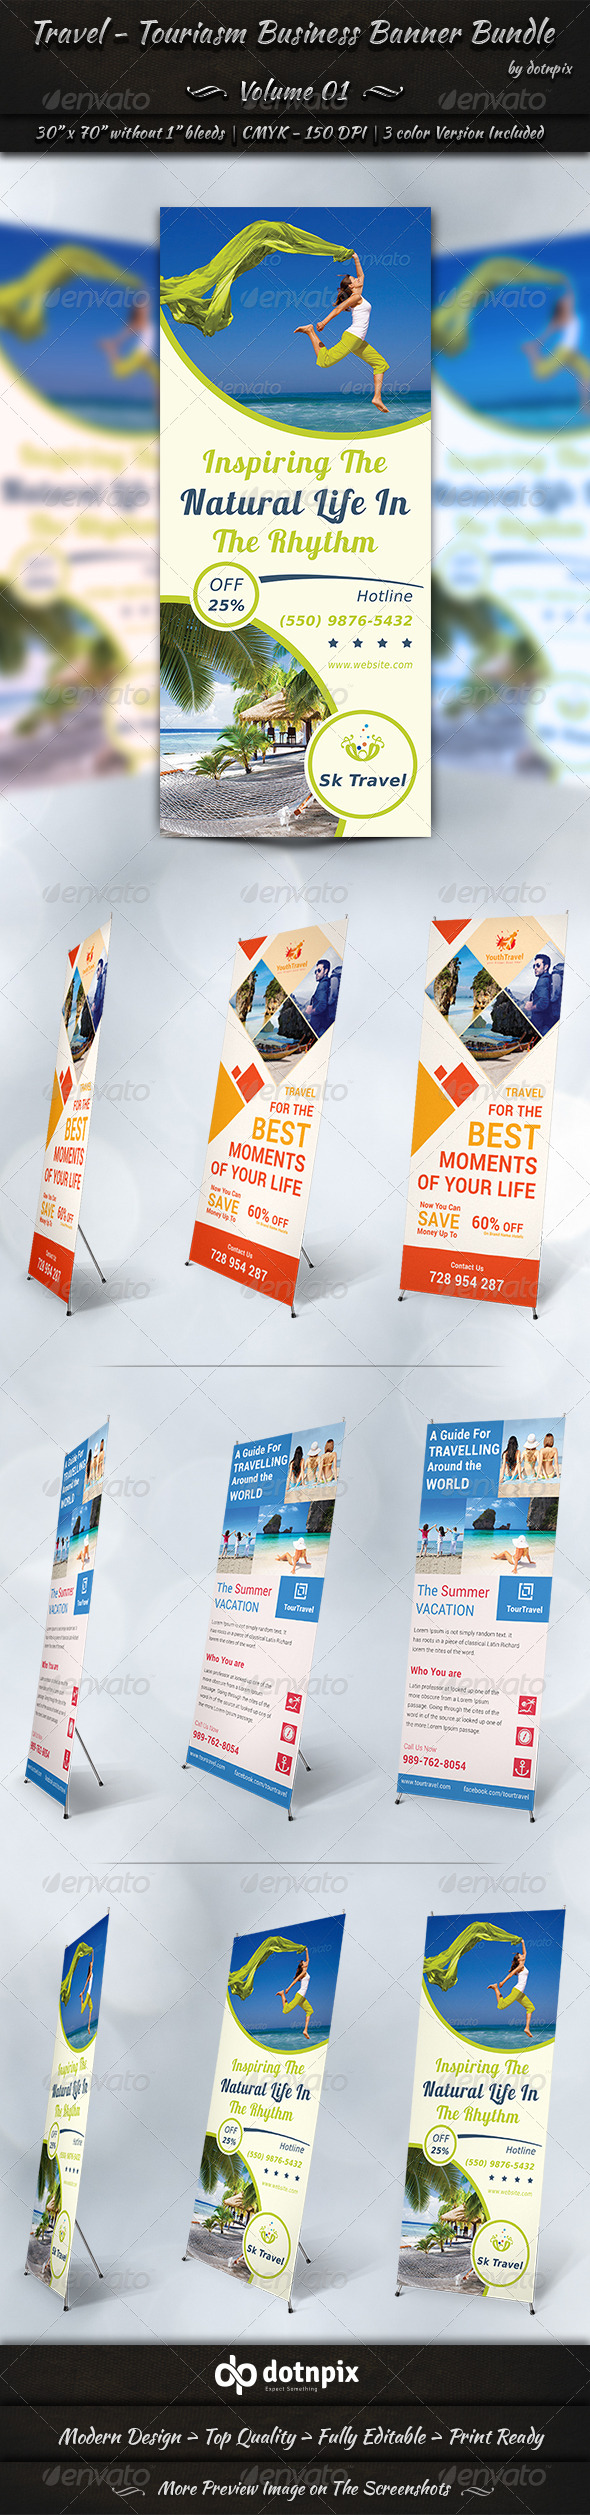 GraphicRiver Travel Tourism Business Banner Bundle Volume 1 7347553